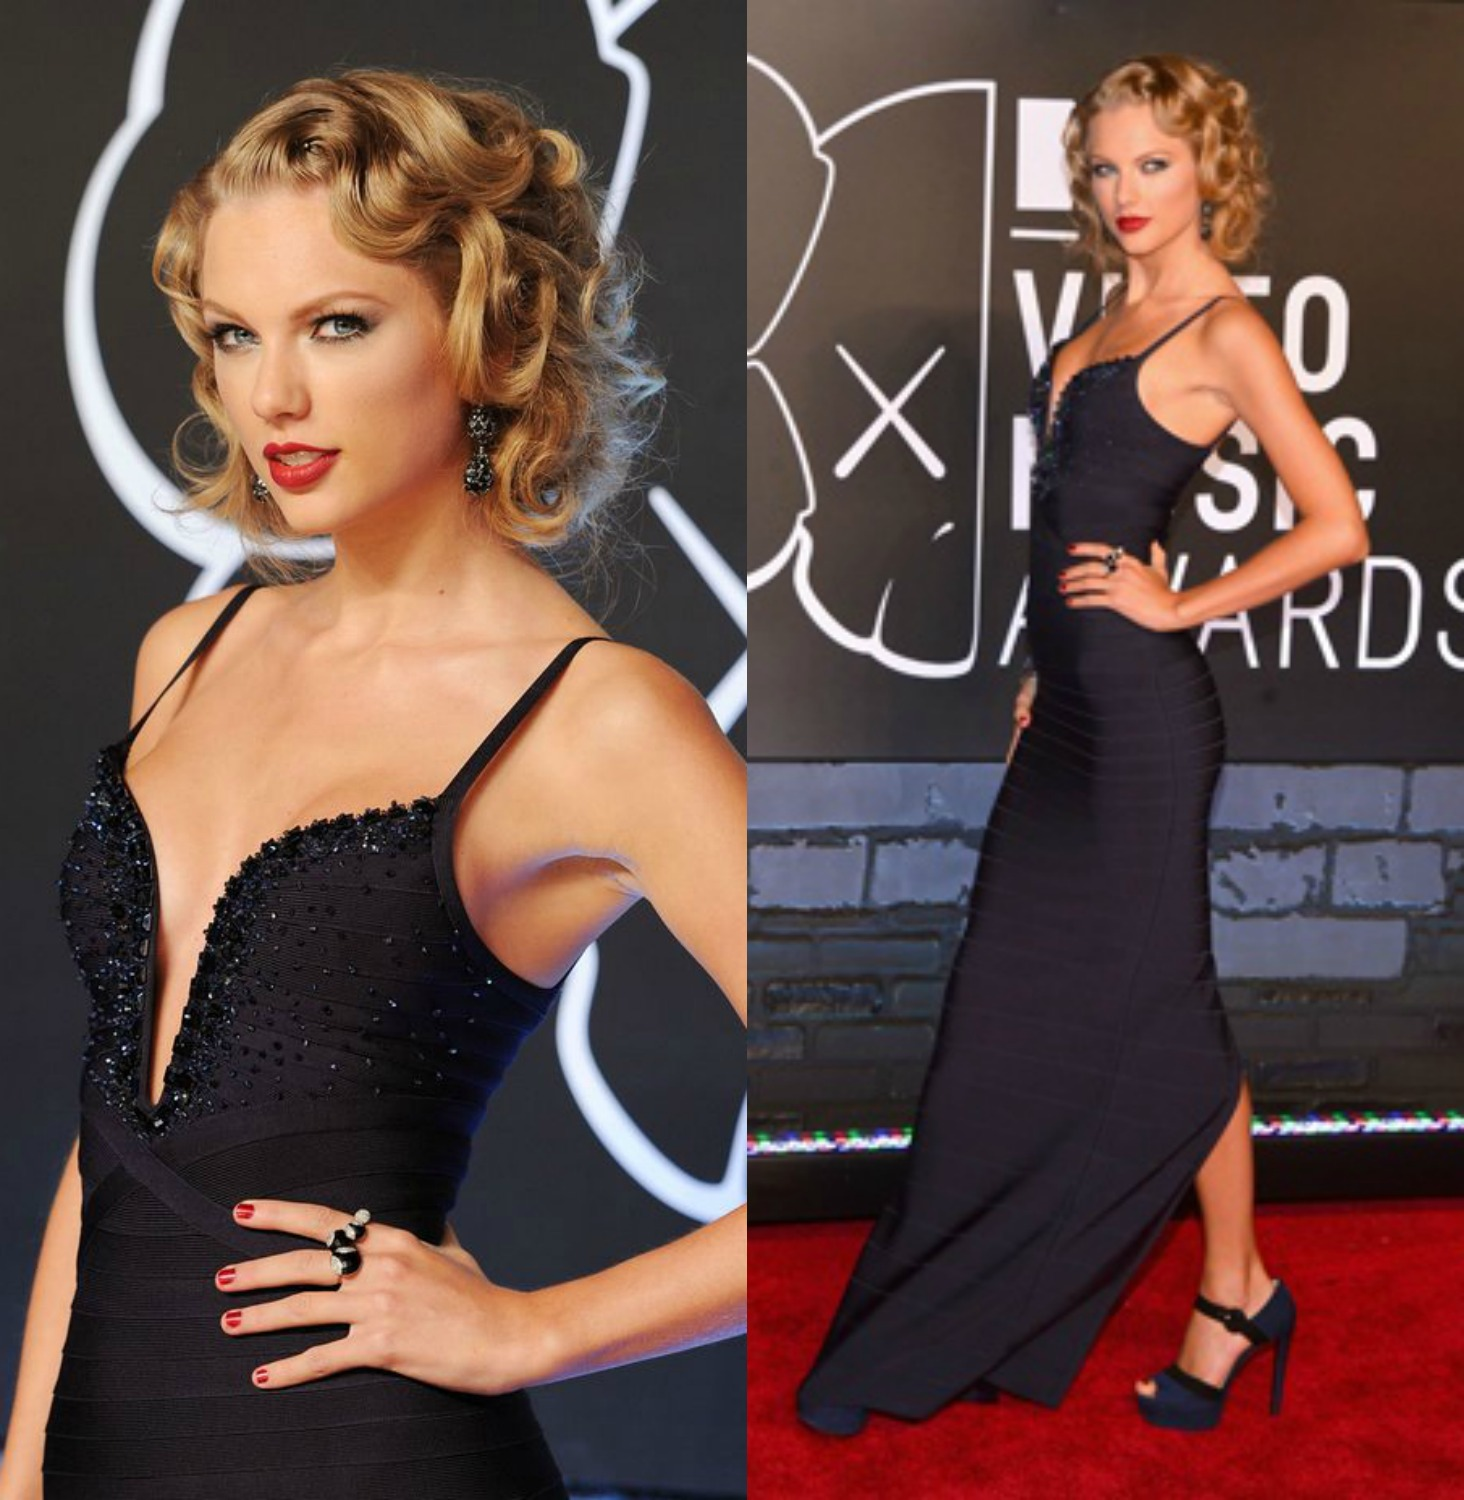 VMA'S-Taylor Swift